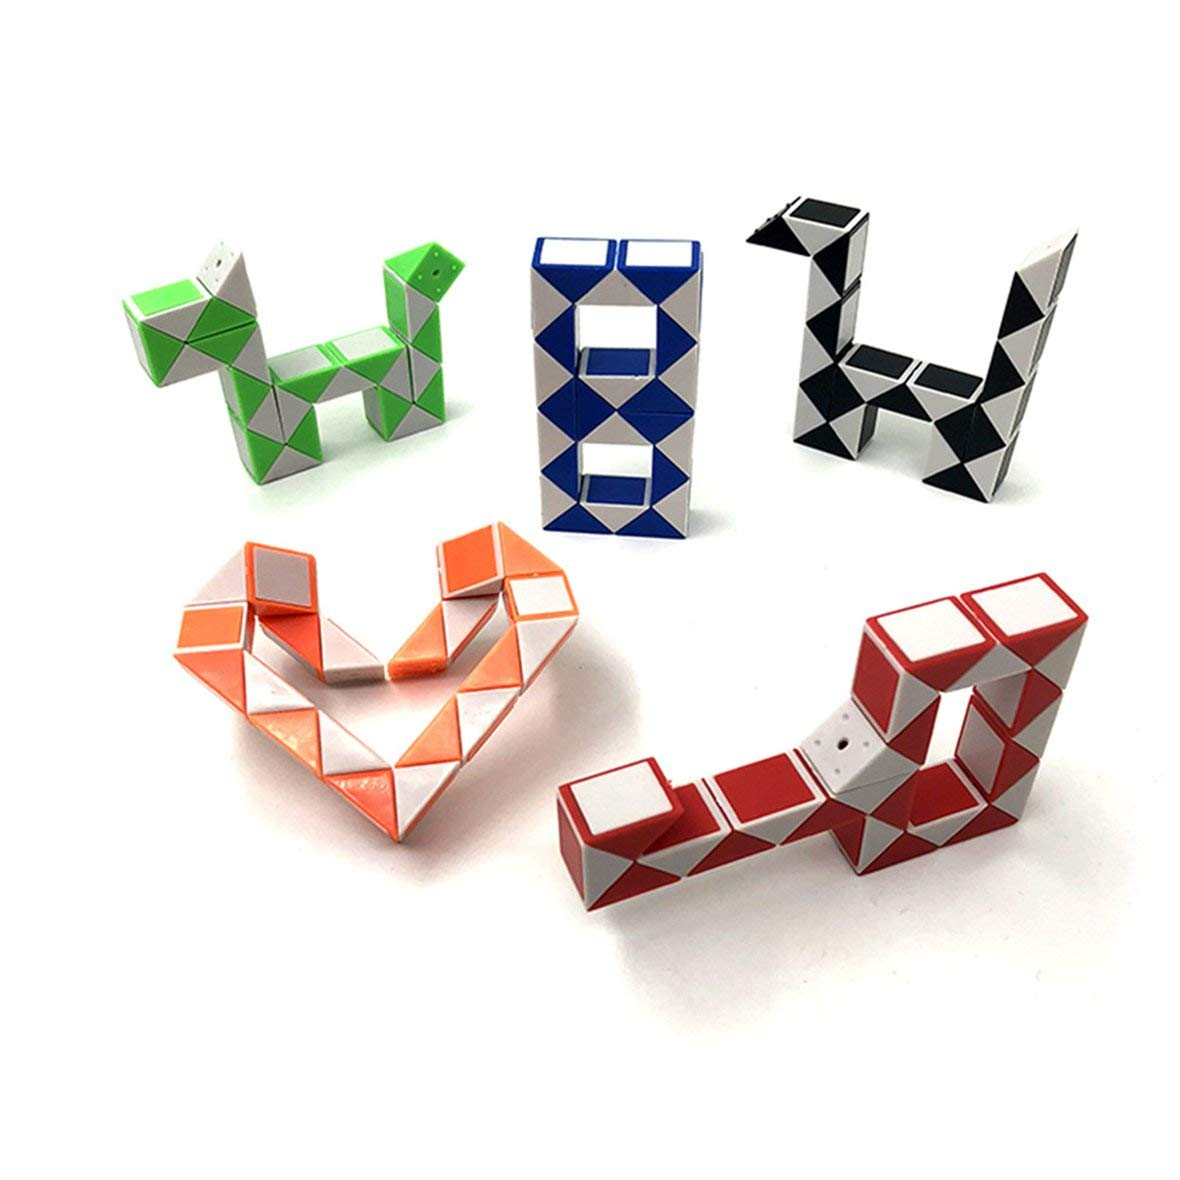 Tivolii 3D Colorful Magic Ruler 24 Segments Snake Twist Cube Puzzle Game Kids Learning Educational Toys for Children Boys Girls